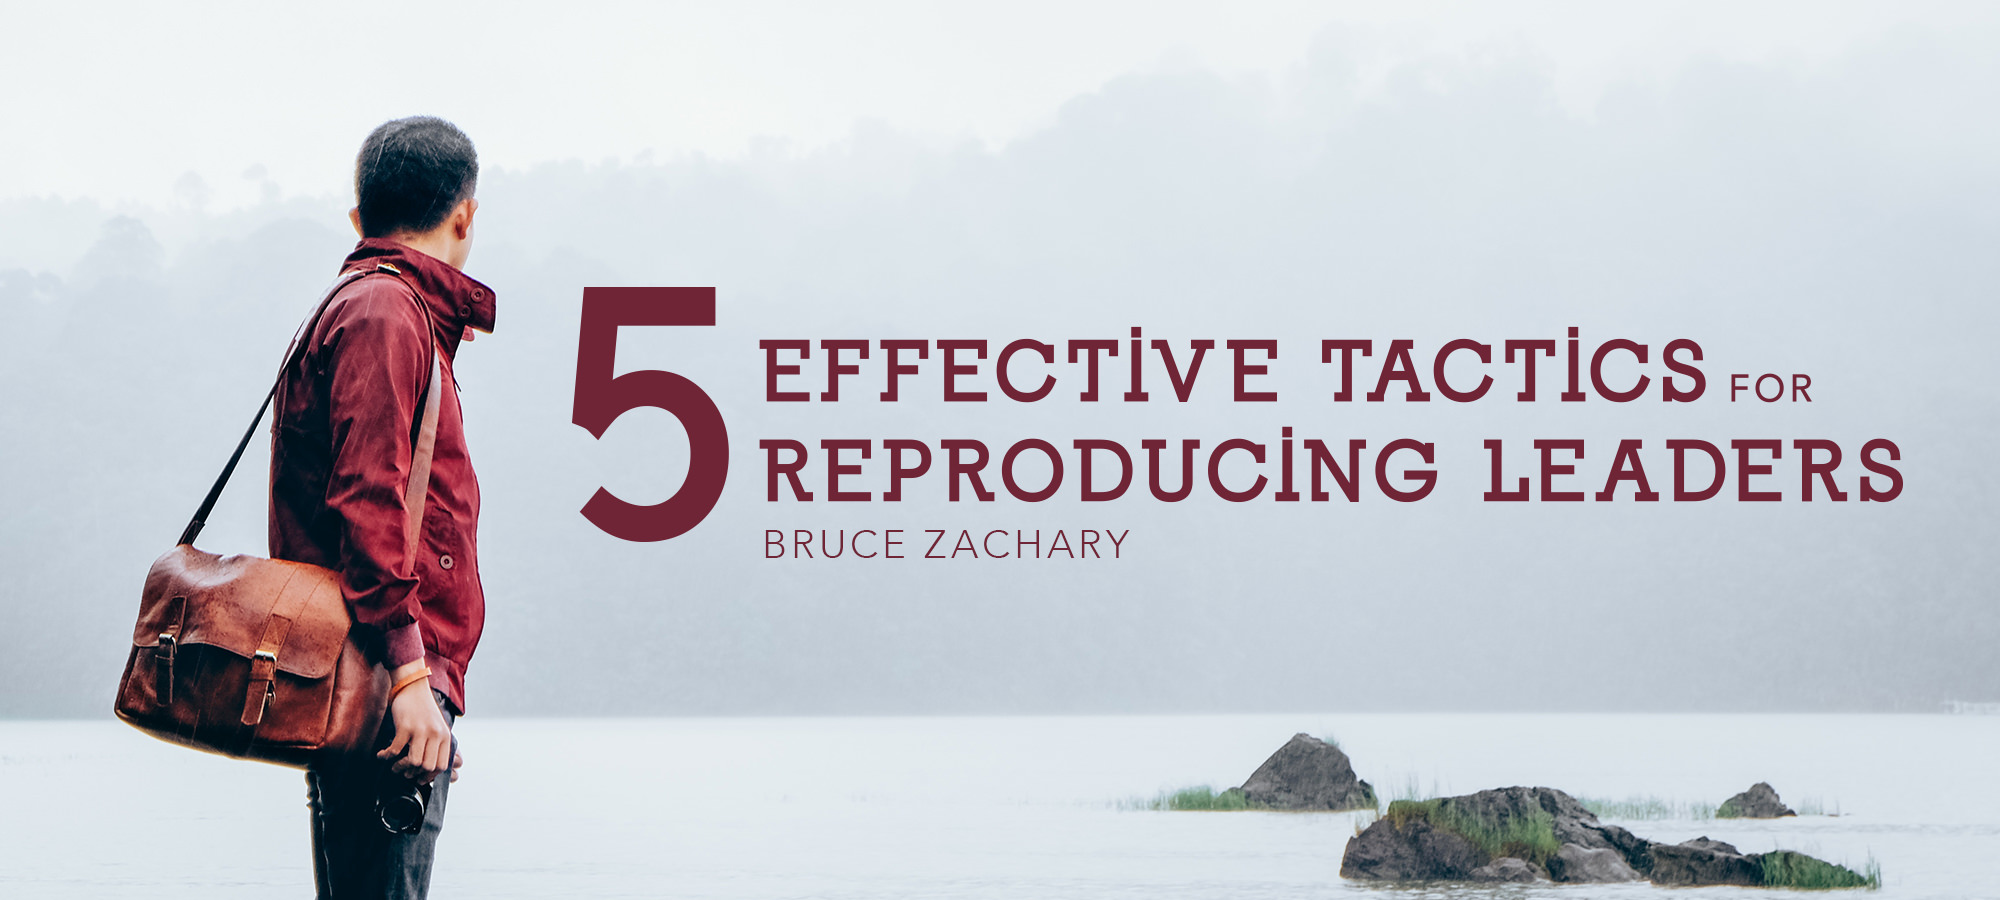 5 Effective Tactics for Reproducing Leaders